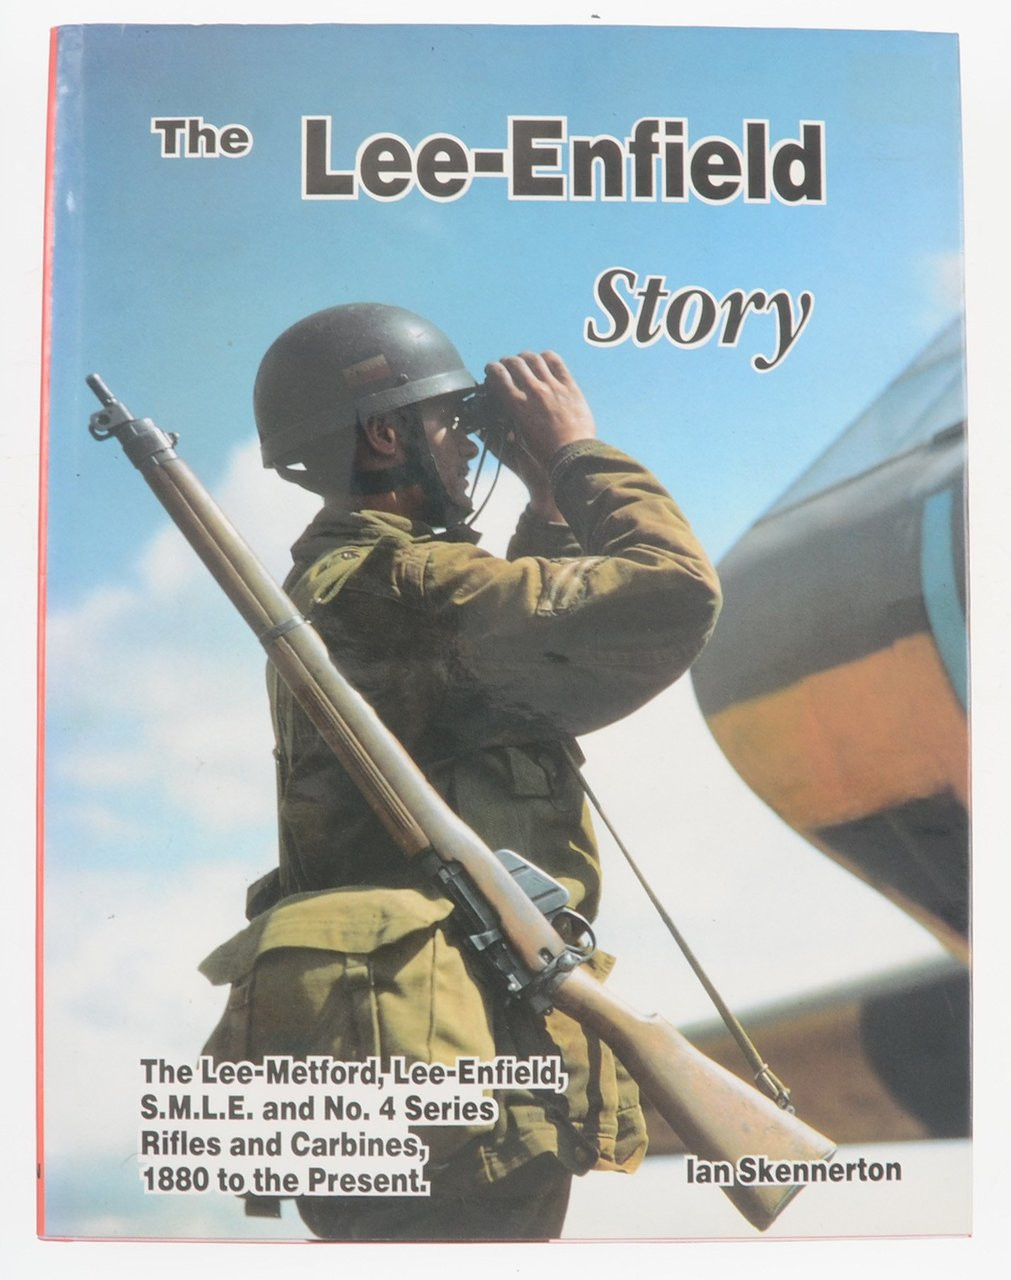 The Lee-Enfield Story